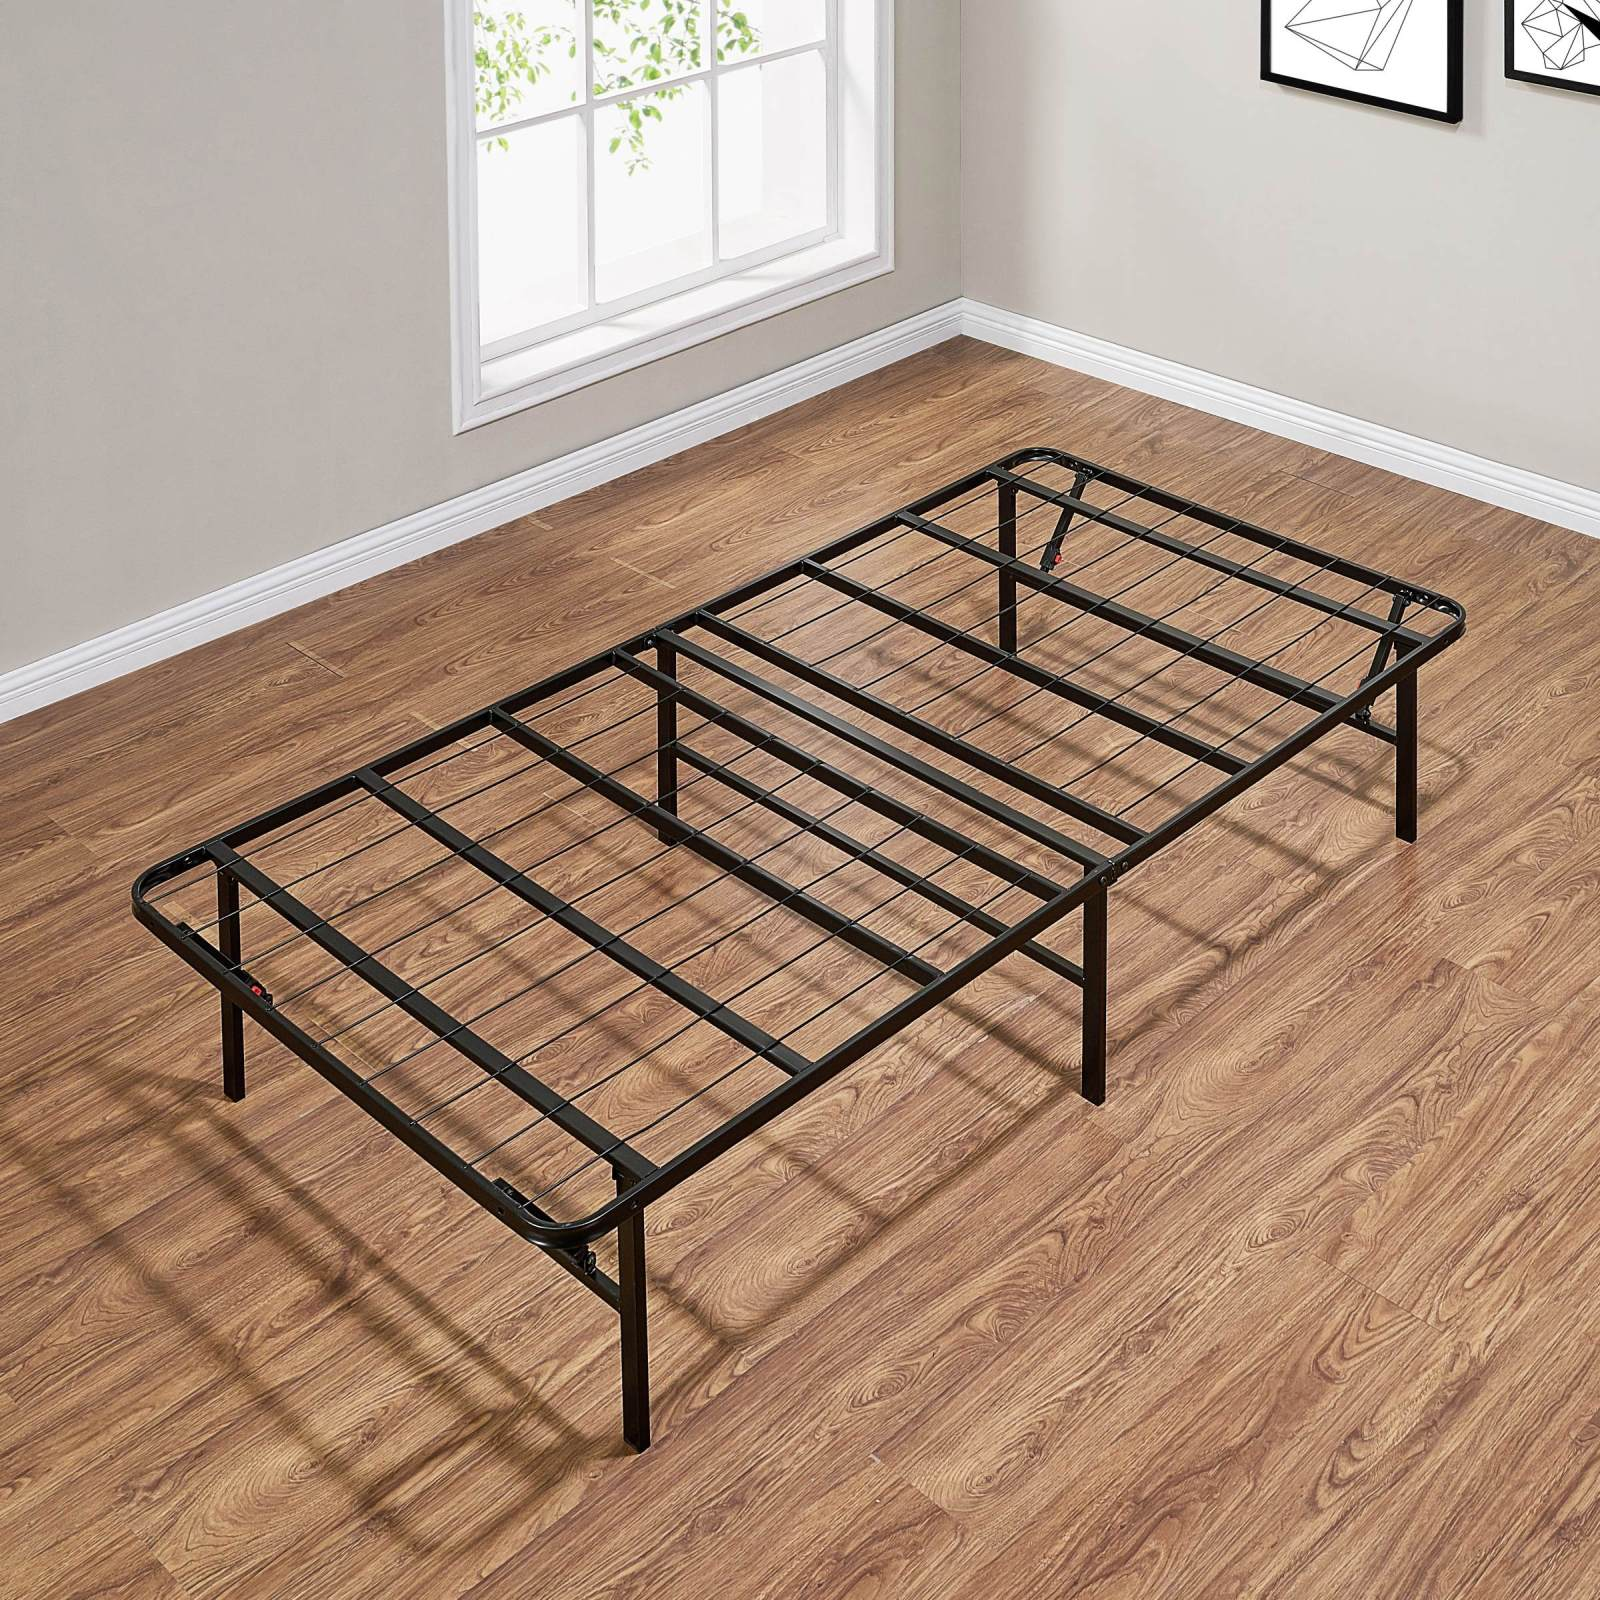 Mainstays 14 High Profile Foldable Steel Bed Frame Powder Coated Steel Twin Walmart Com